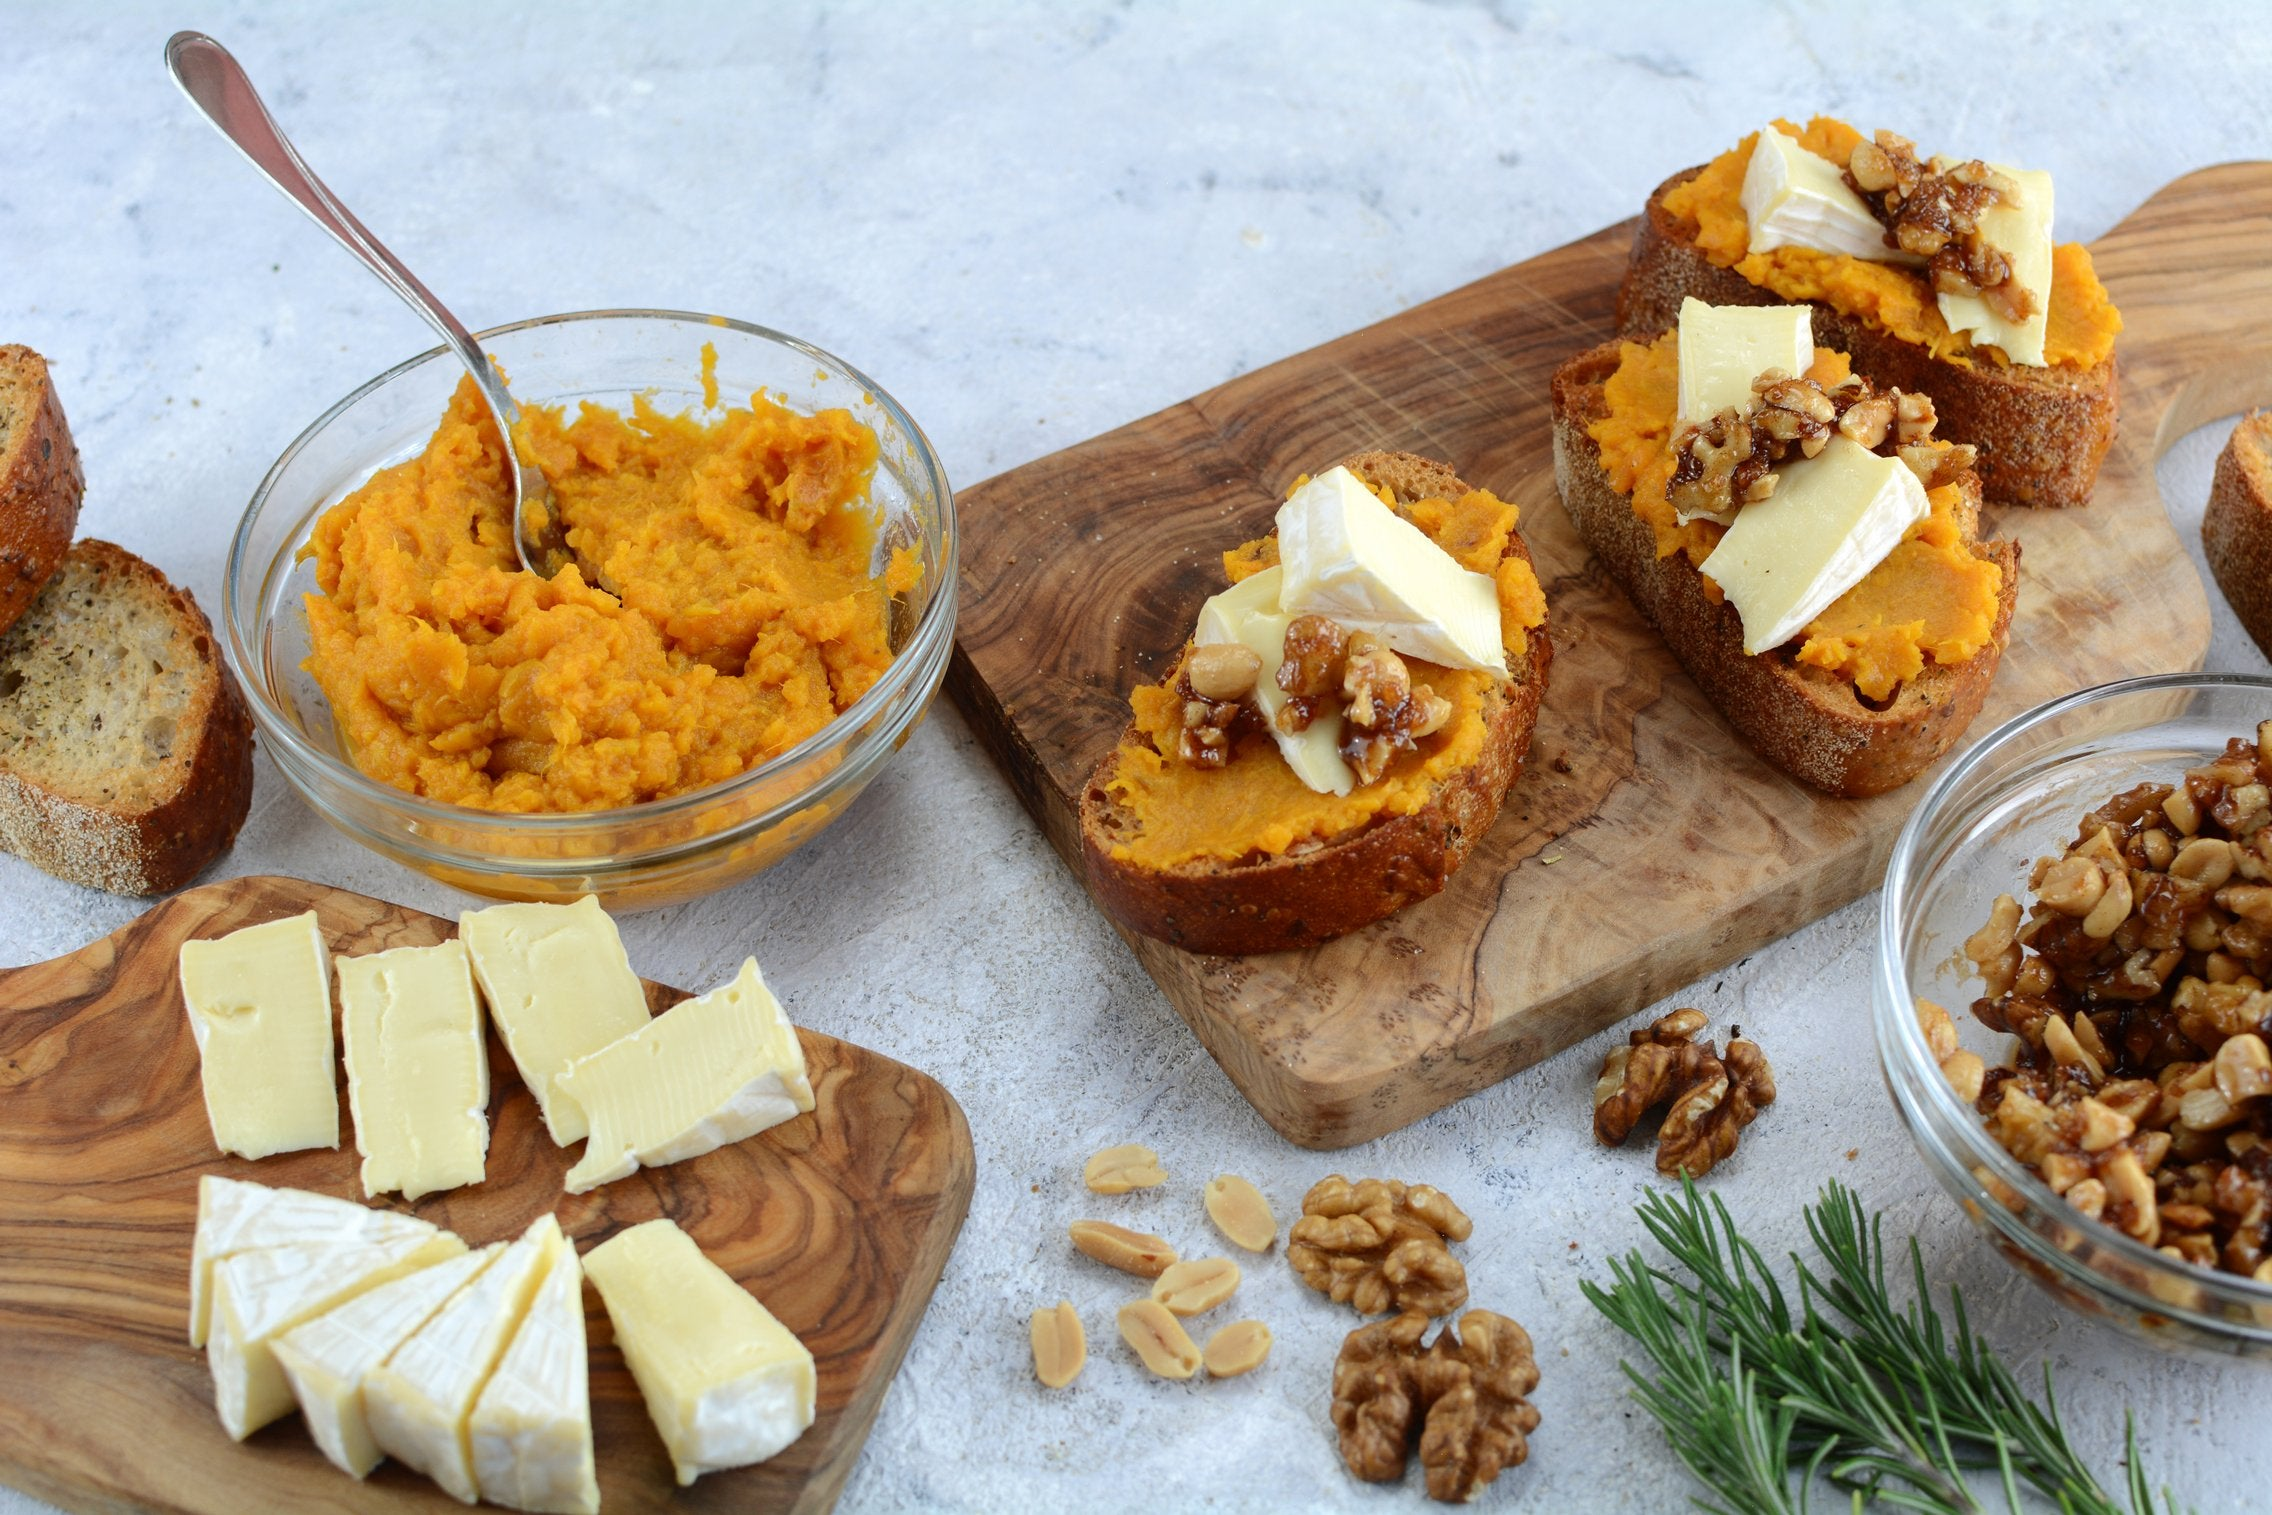 Sweet Potato and Brie Crostini with Candied Nuts